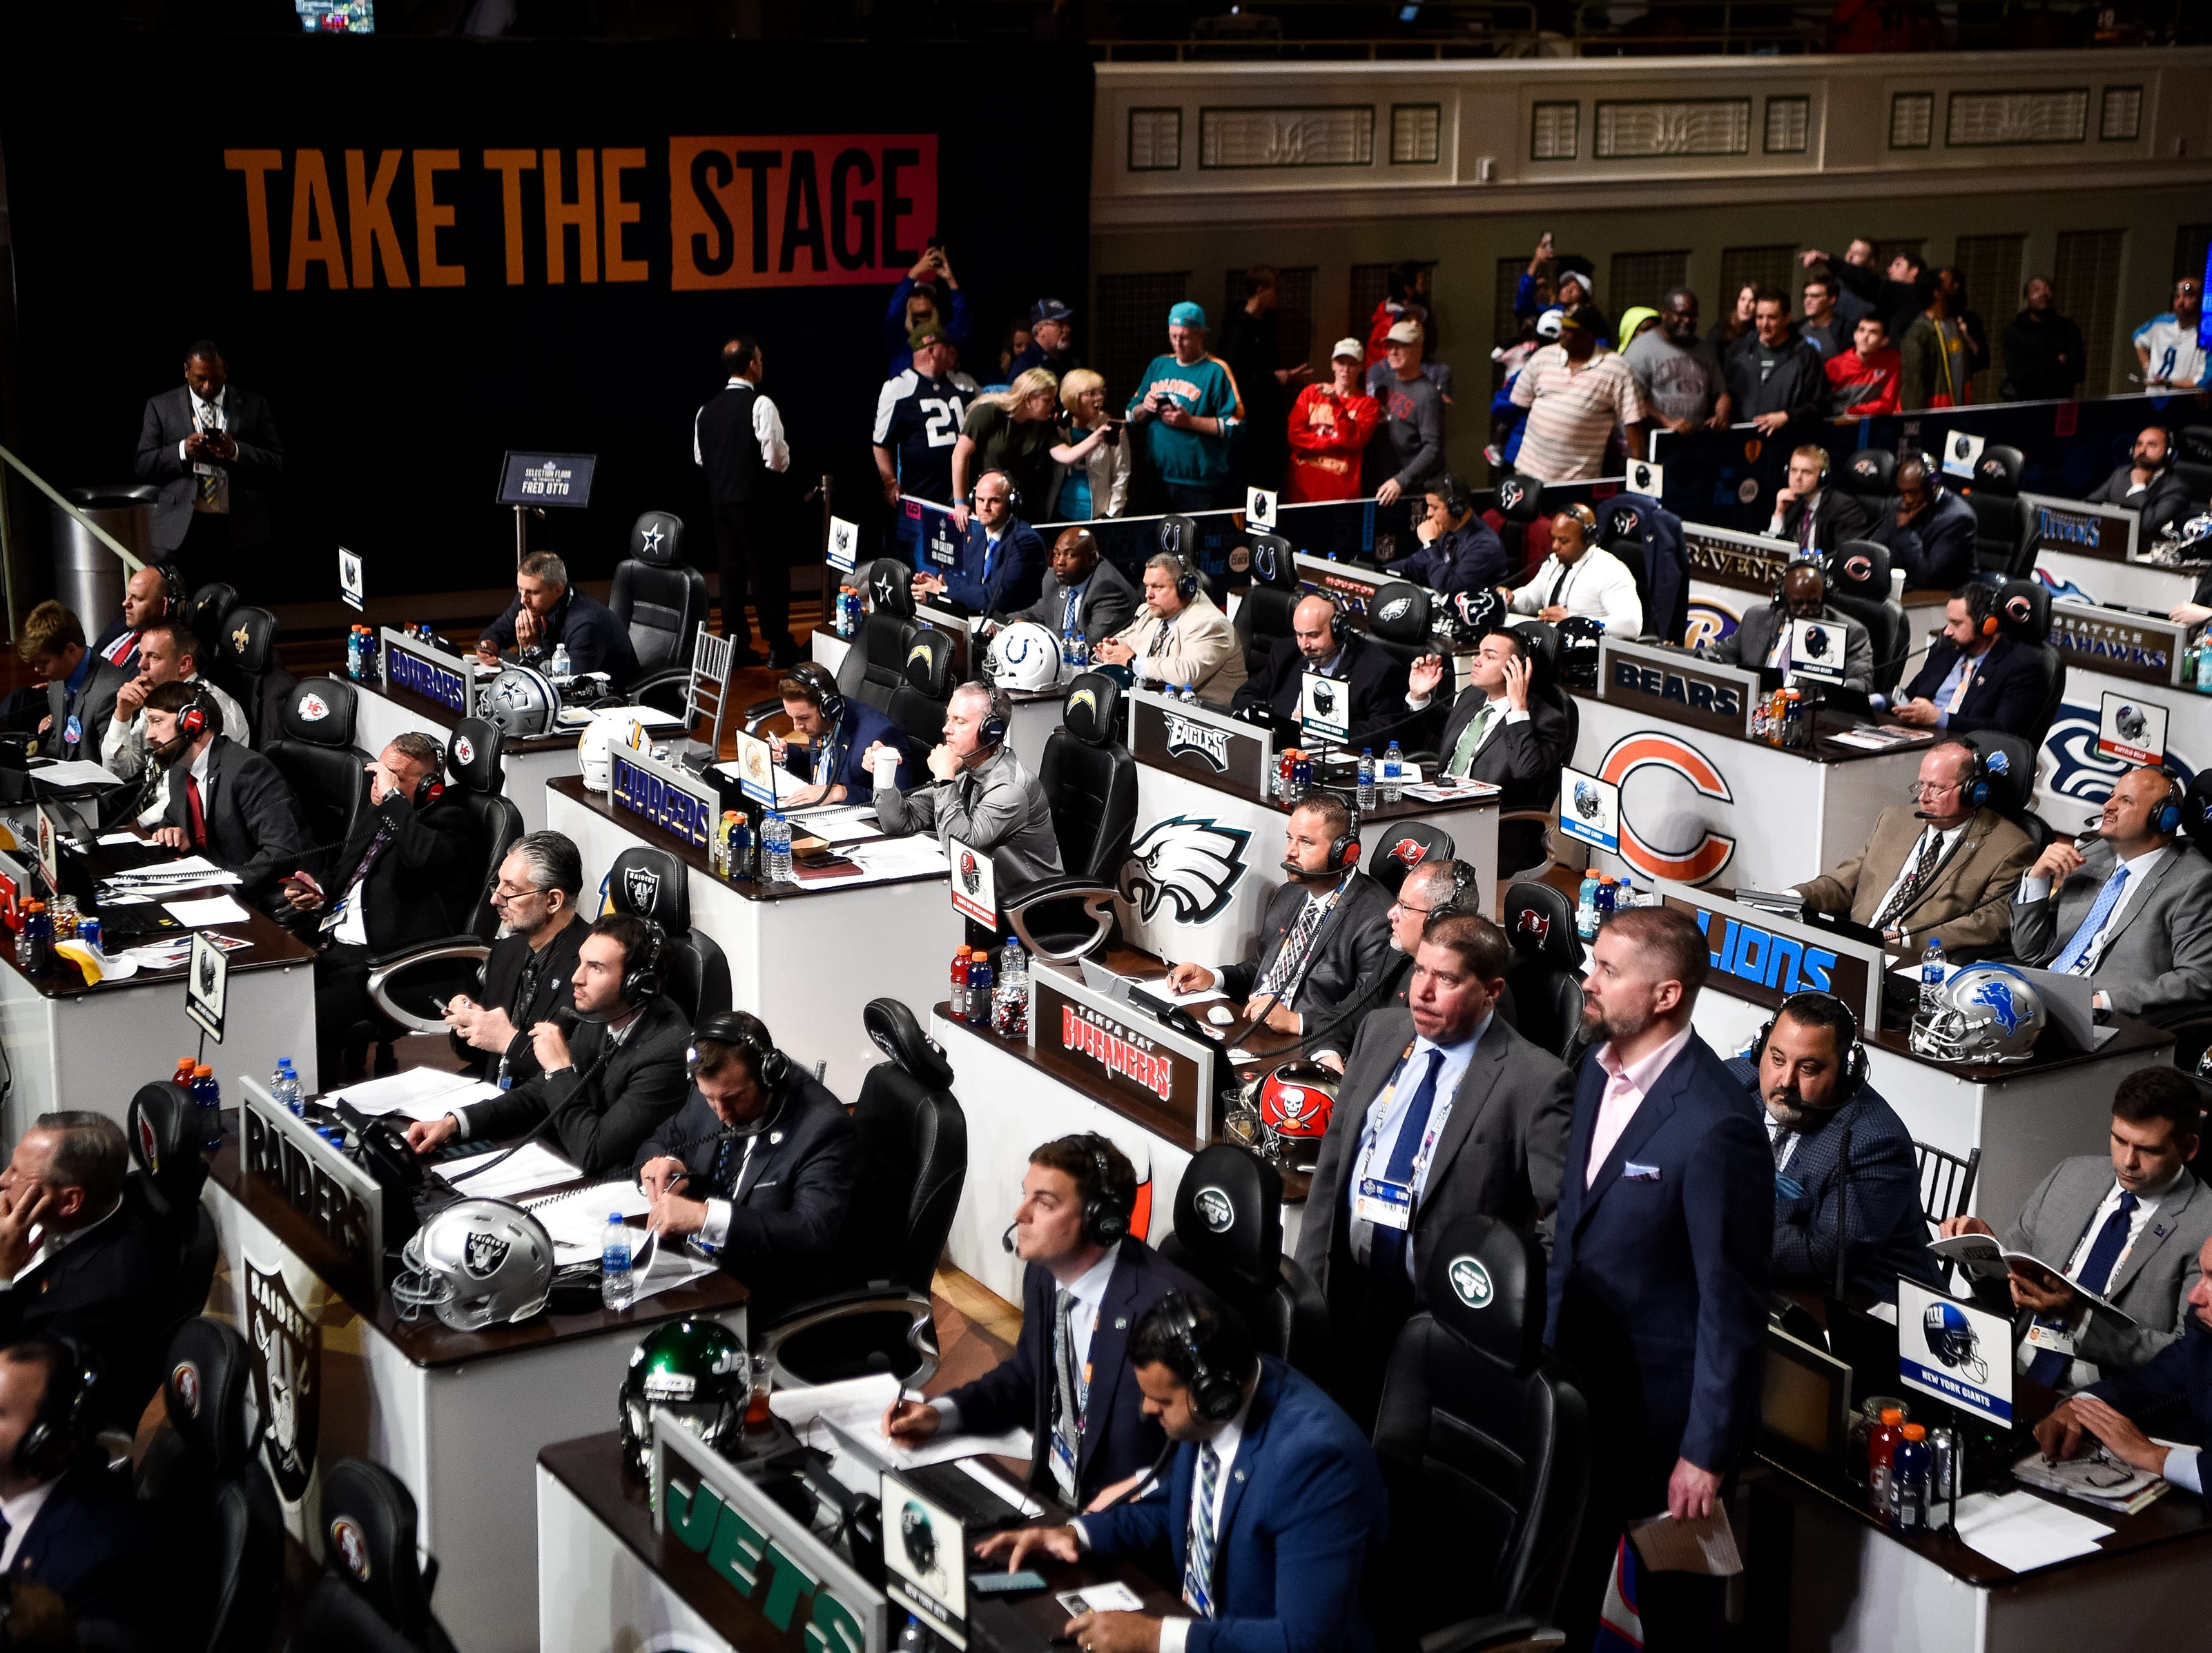 NFL officials wait to make their pick in the first round of the NFL Draft at the Schermerhorn Symphony Center on Thursday, April 25, 2019.